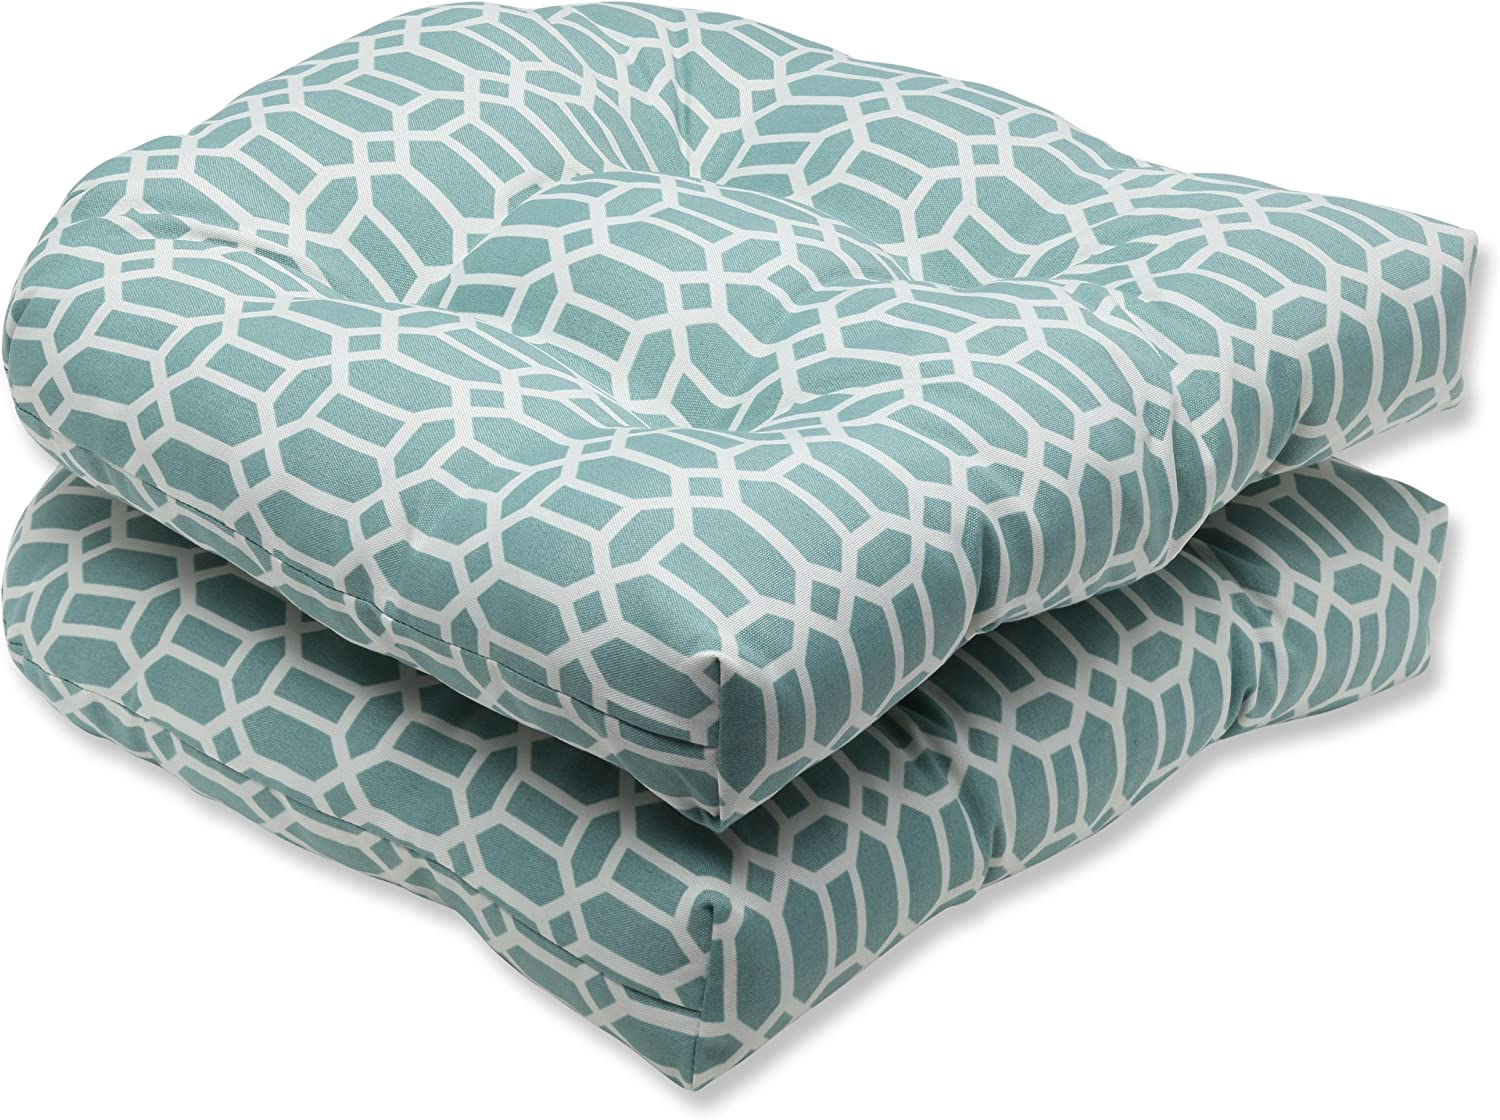 Pillow Perfect Outdoor Rhodes Quartz Wicker Seat Cushion, Set of 2